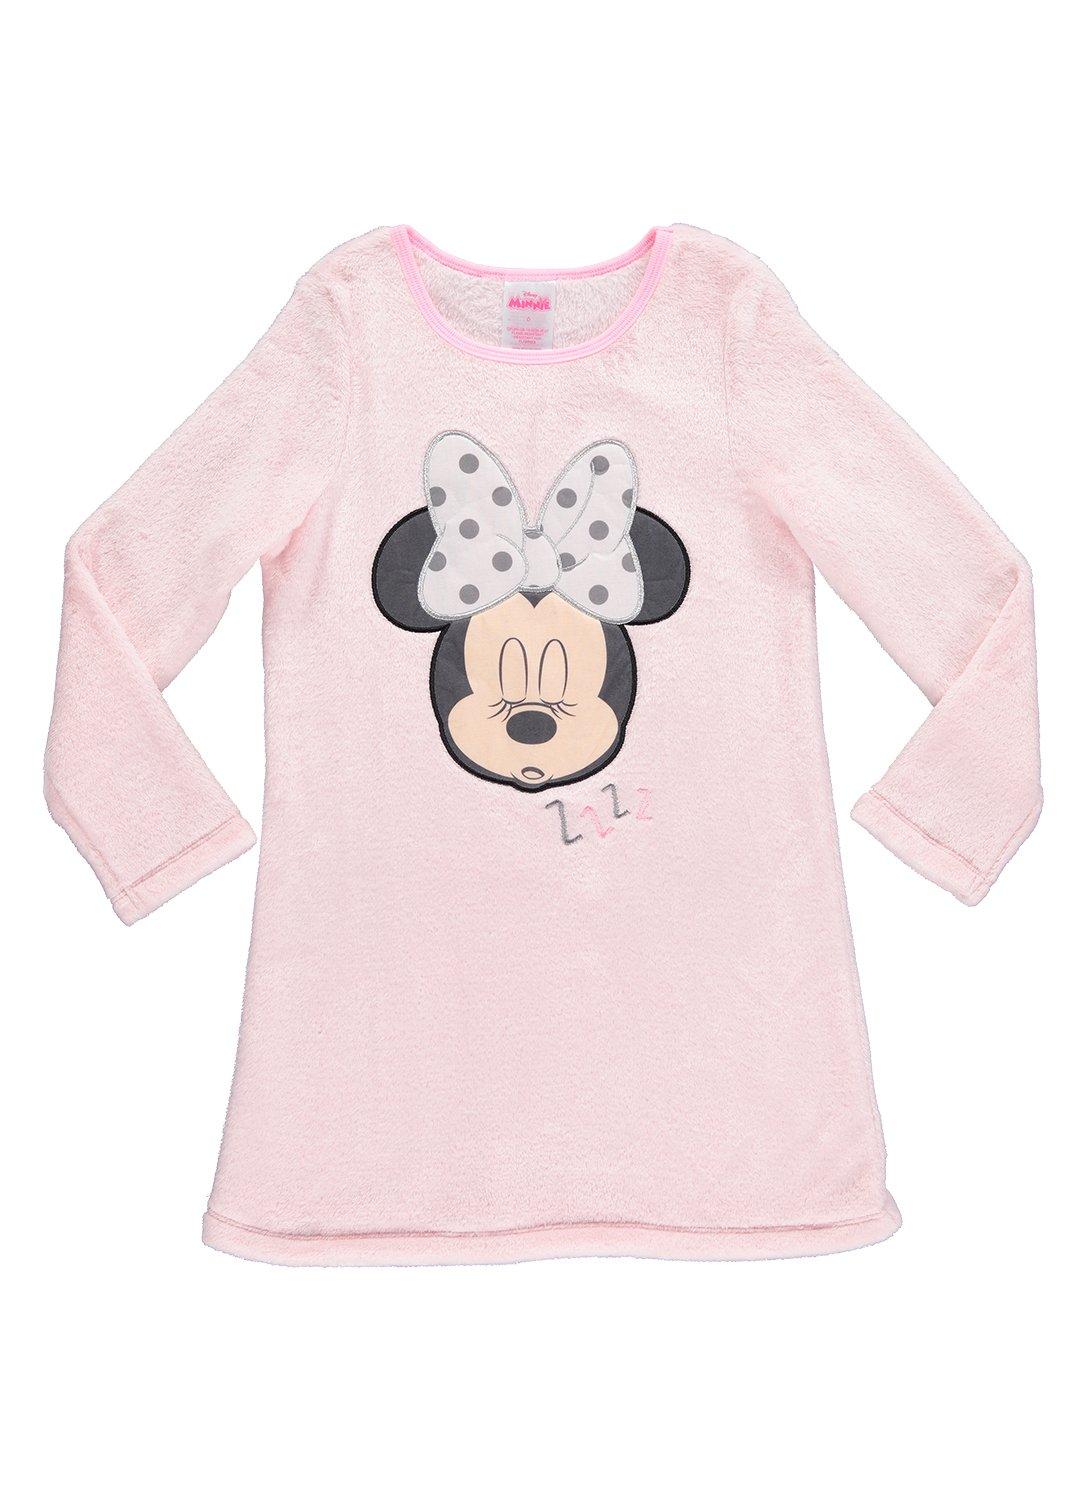 Disney Minnie Mouse Soft & Comfortable Nightgown | Cute PJ for Girls